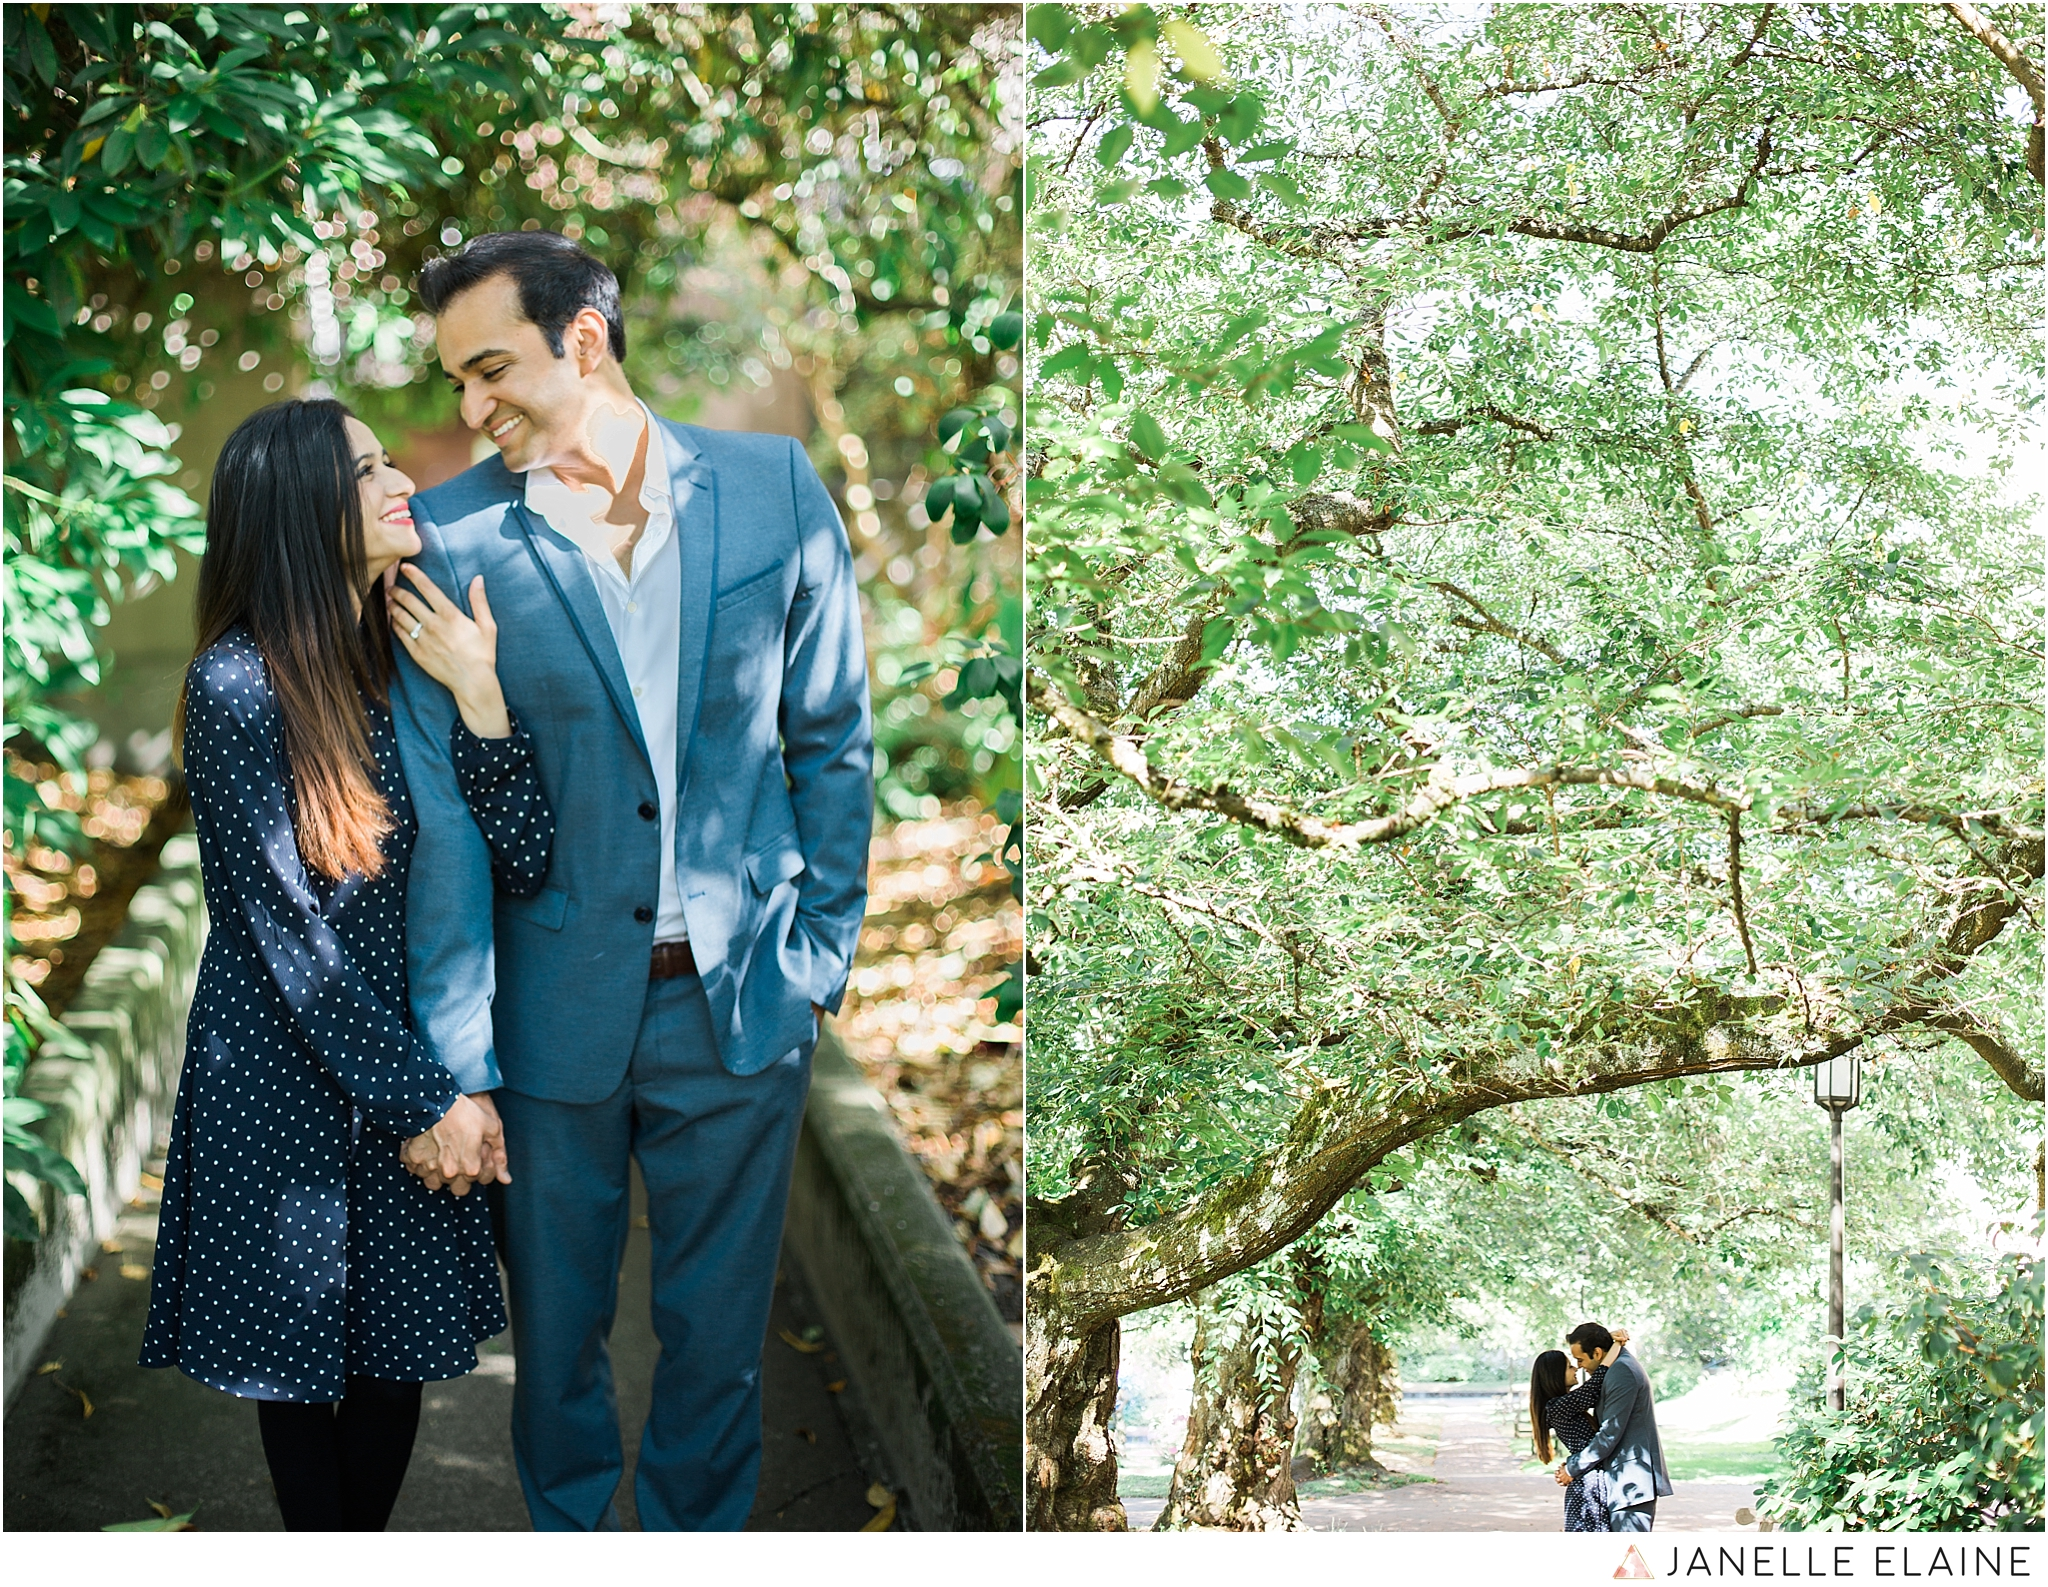 janelle elaine photography-zain and umema-seattle-uw-red square-engagement-photographer-49.jpg